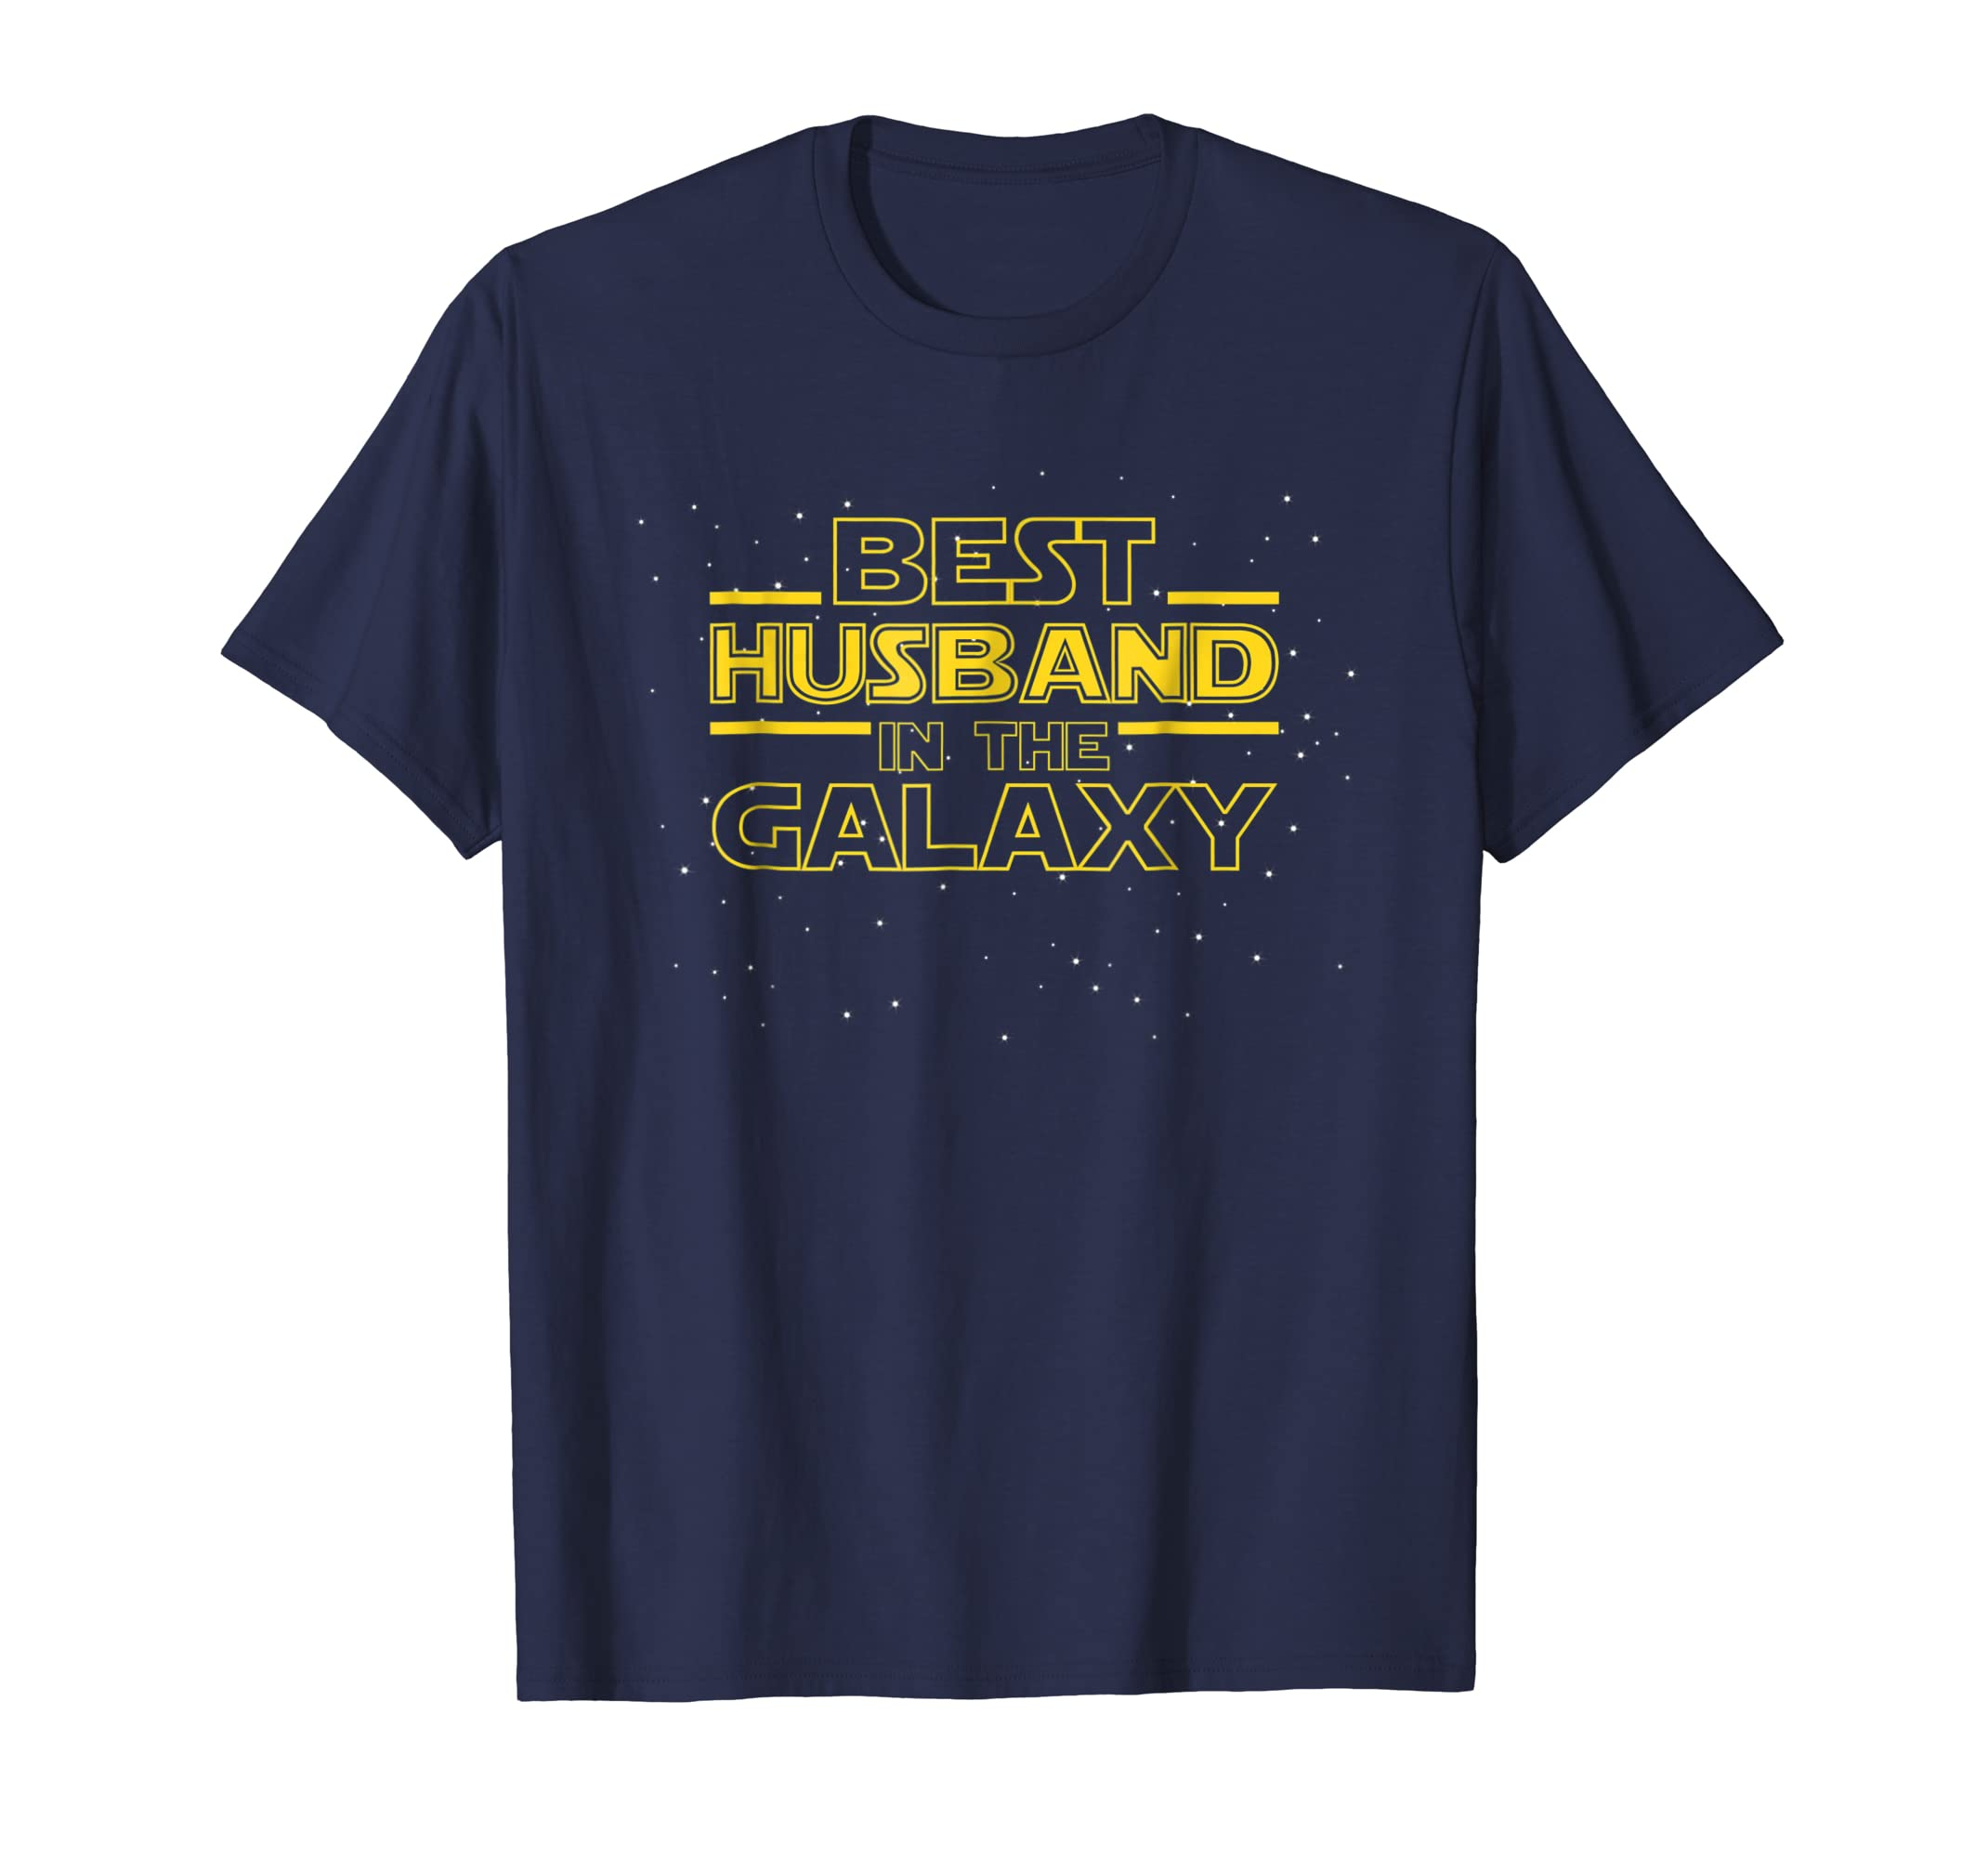 Mens Best Husband in the Galaxy, Funny Husband T Shirt Gift-azvn